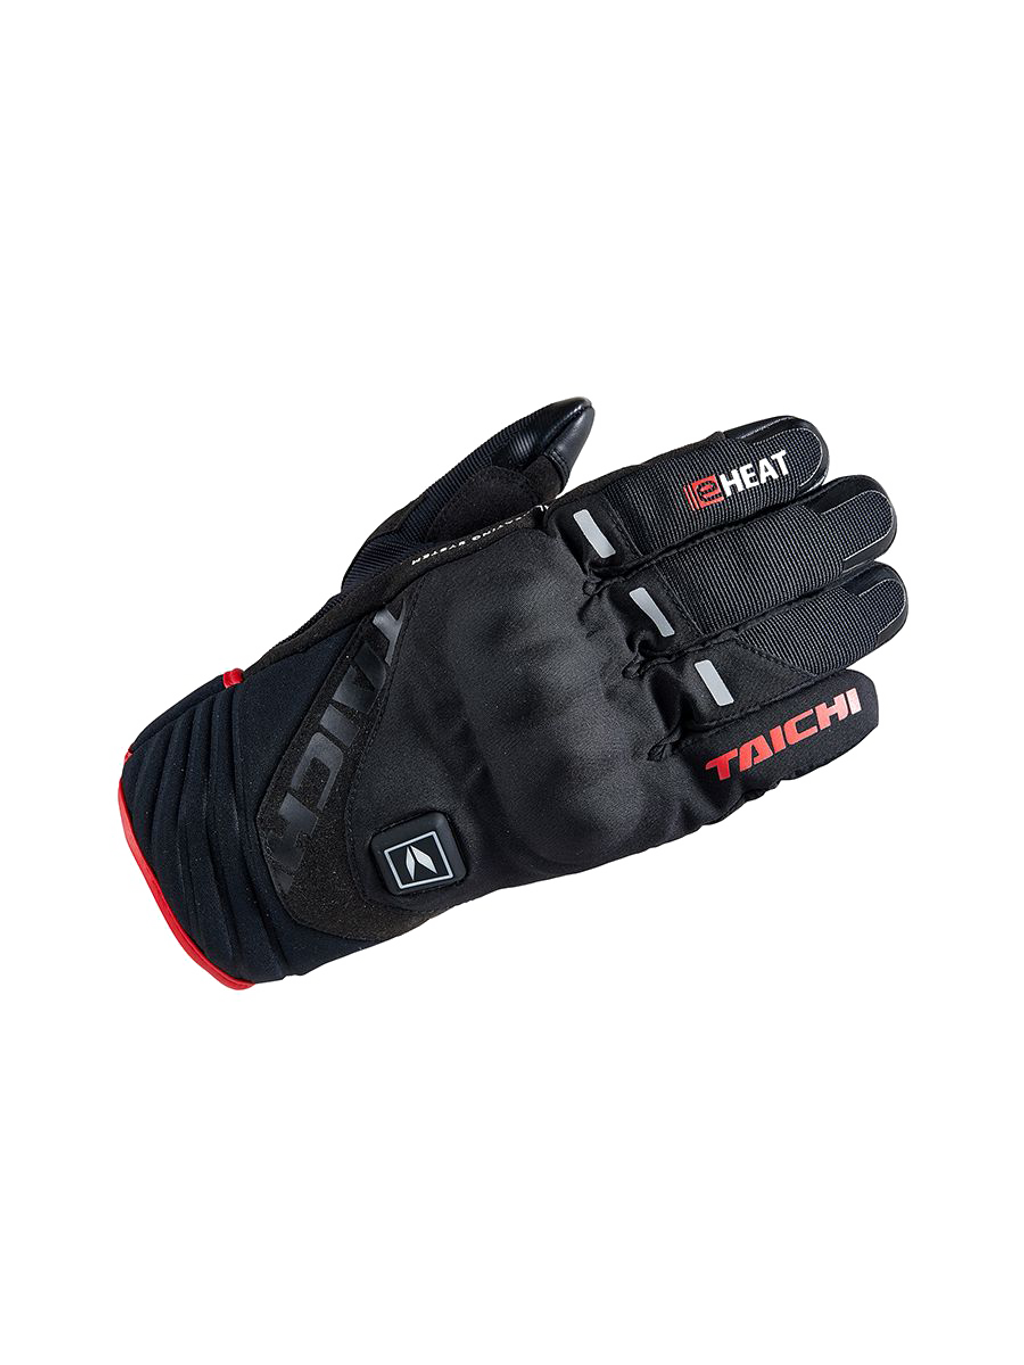 63 RS TAICHI RST642 e-HEAT STEALTH SHORT GLOVE black red.png